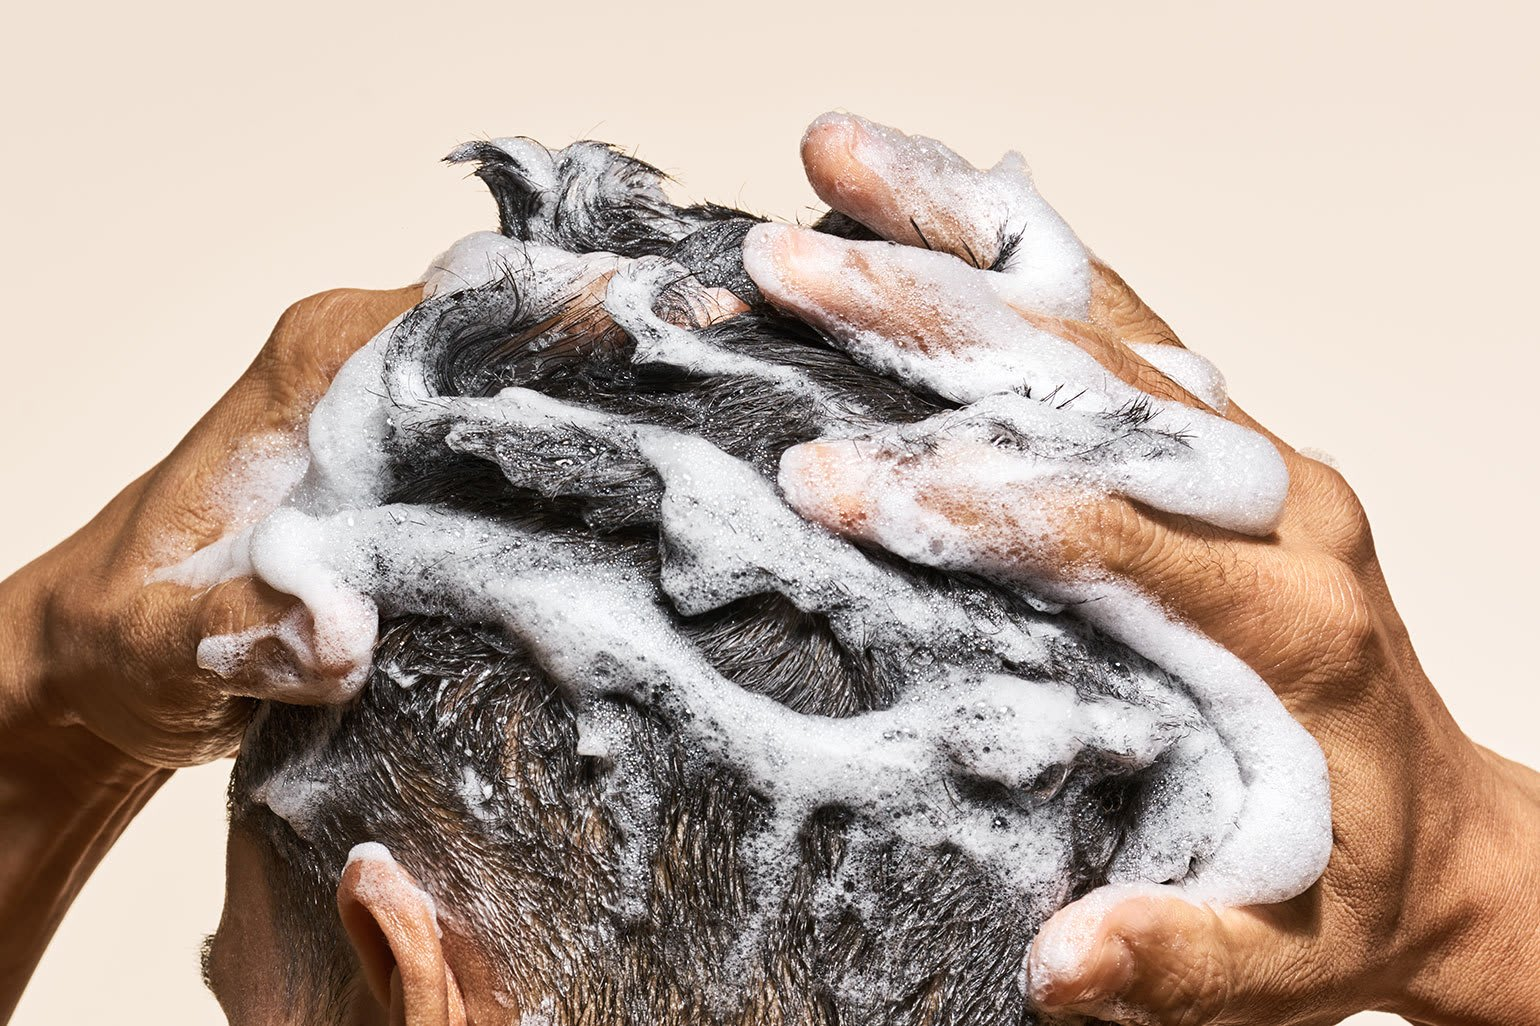 Hands lather shampoo in a man's hair